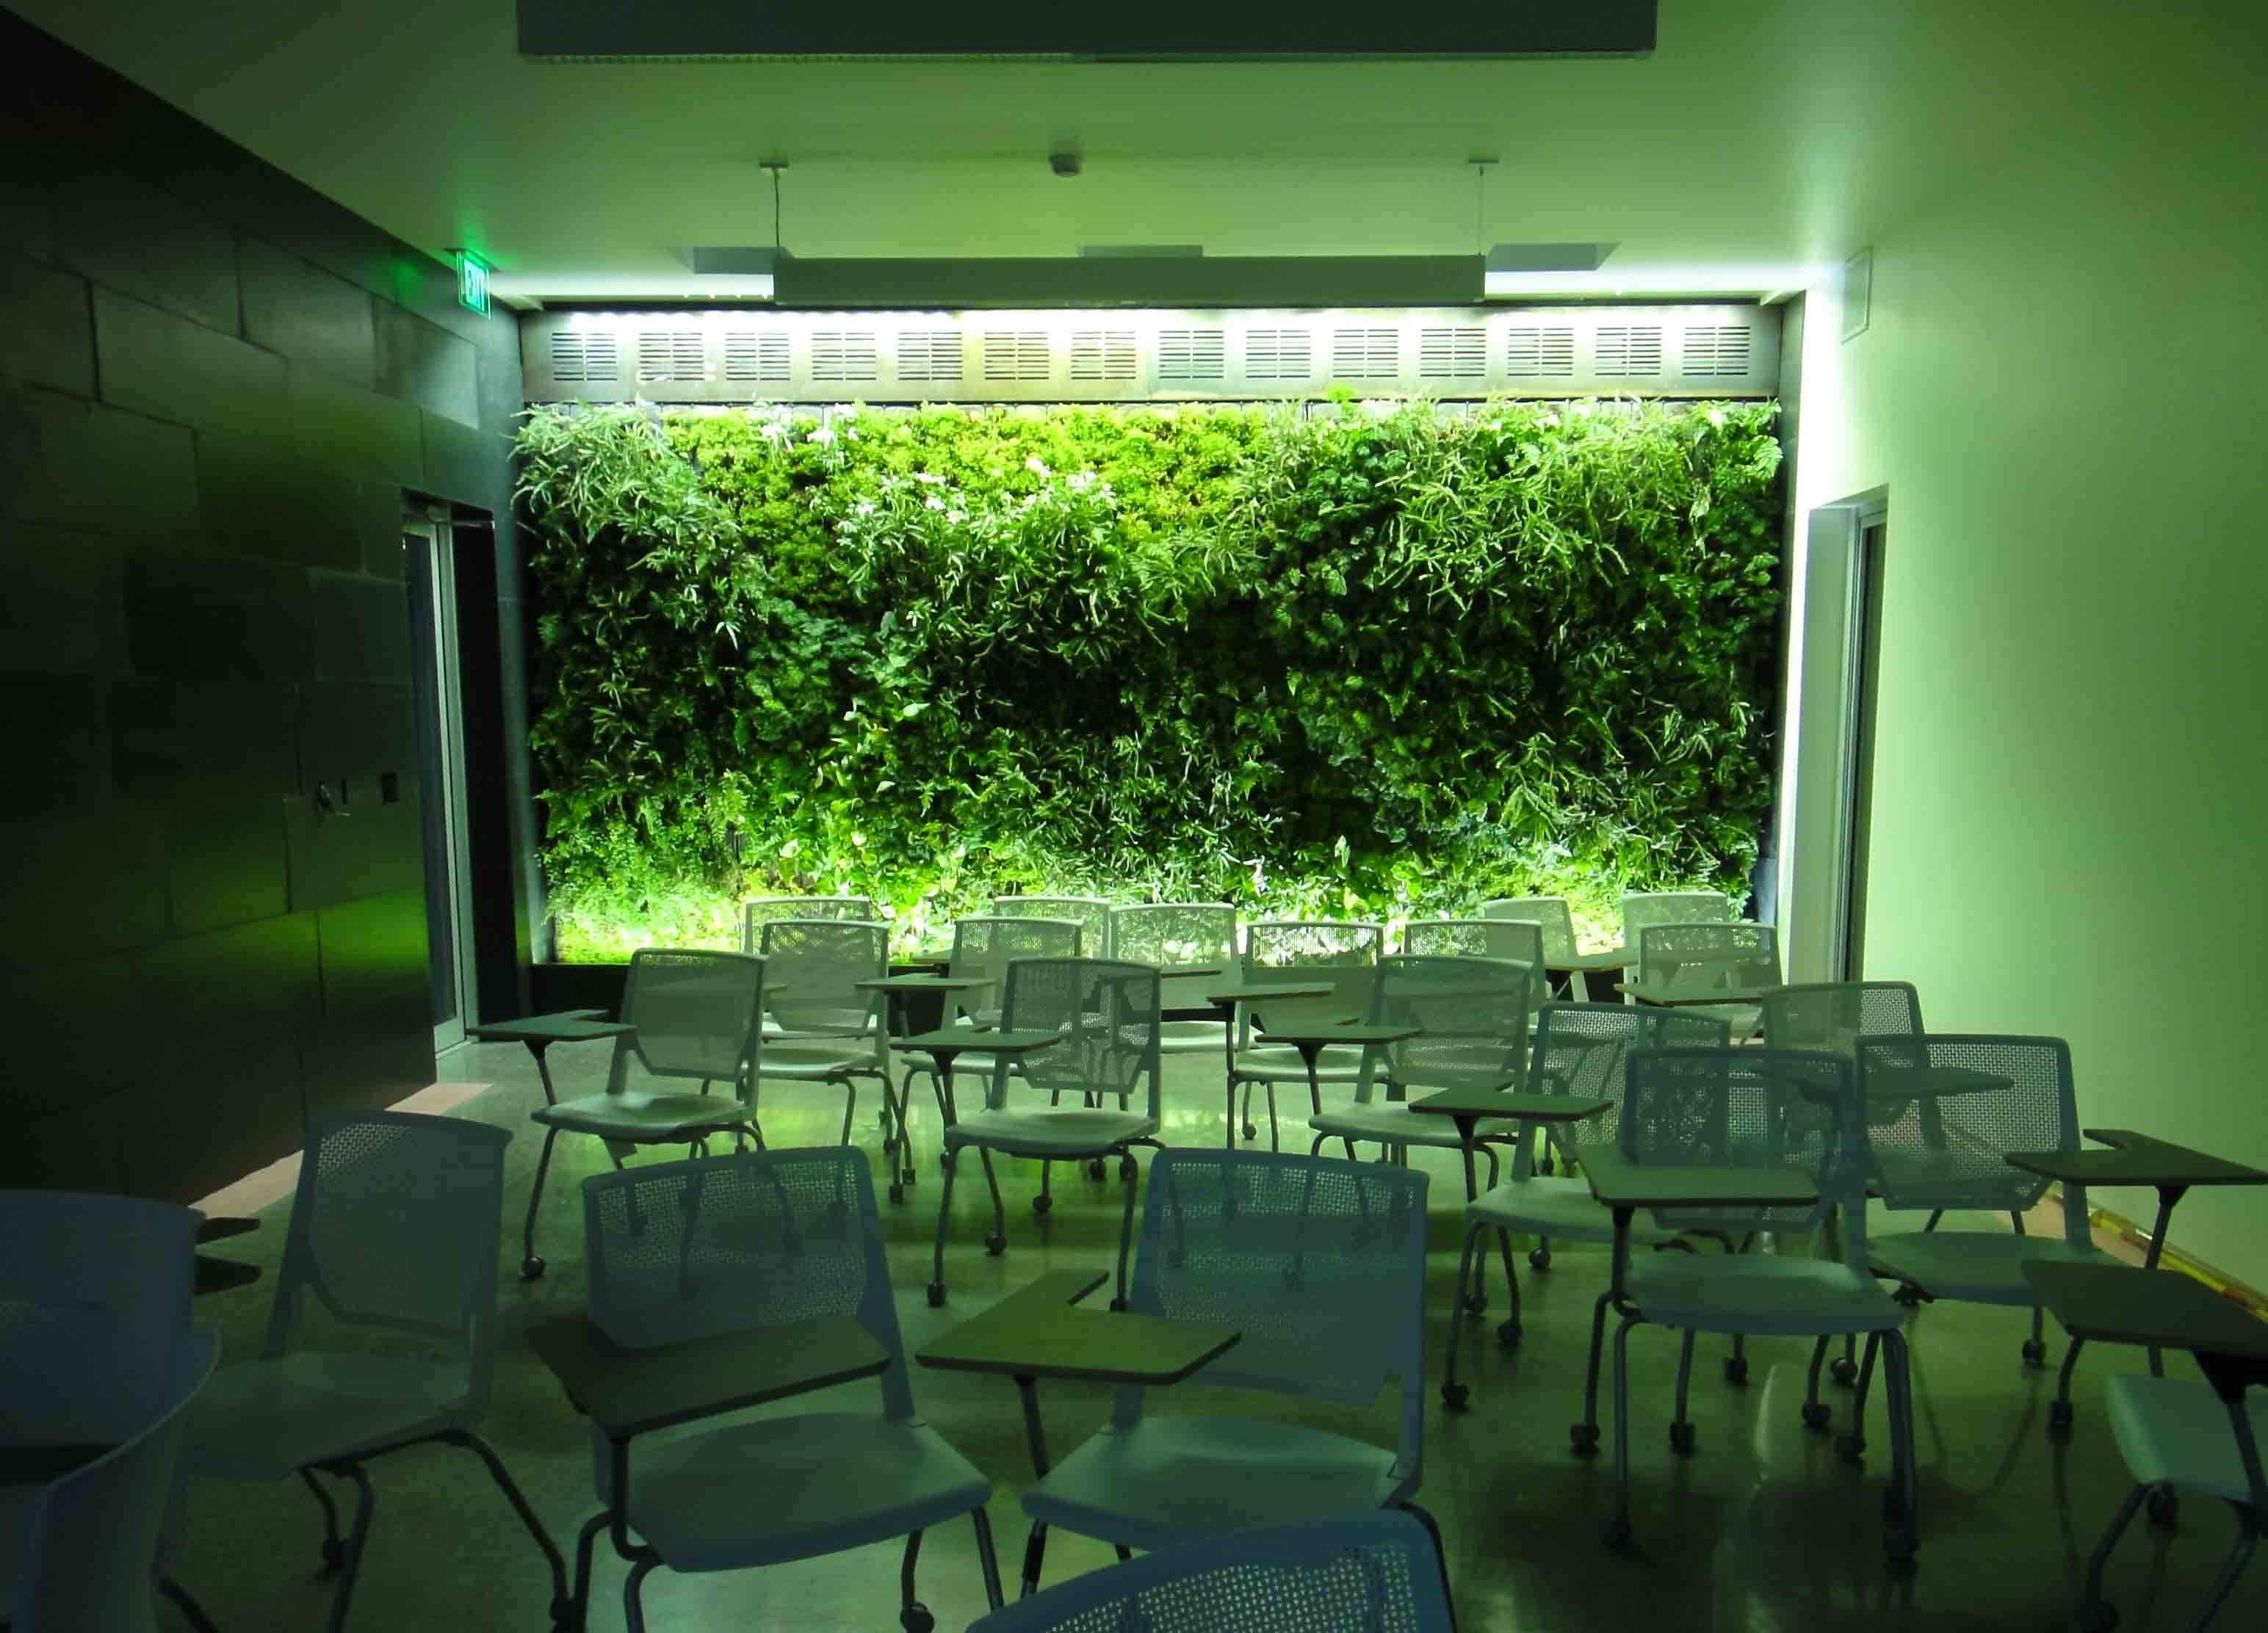 Lights For Green Wall : Green Wall Lighting Sunlite Science and Technology, Inc.